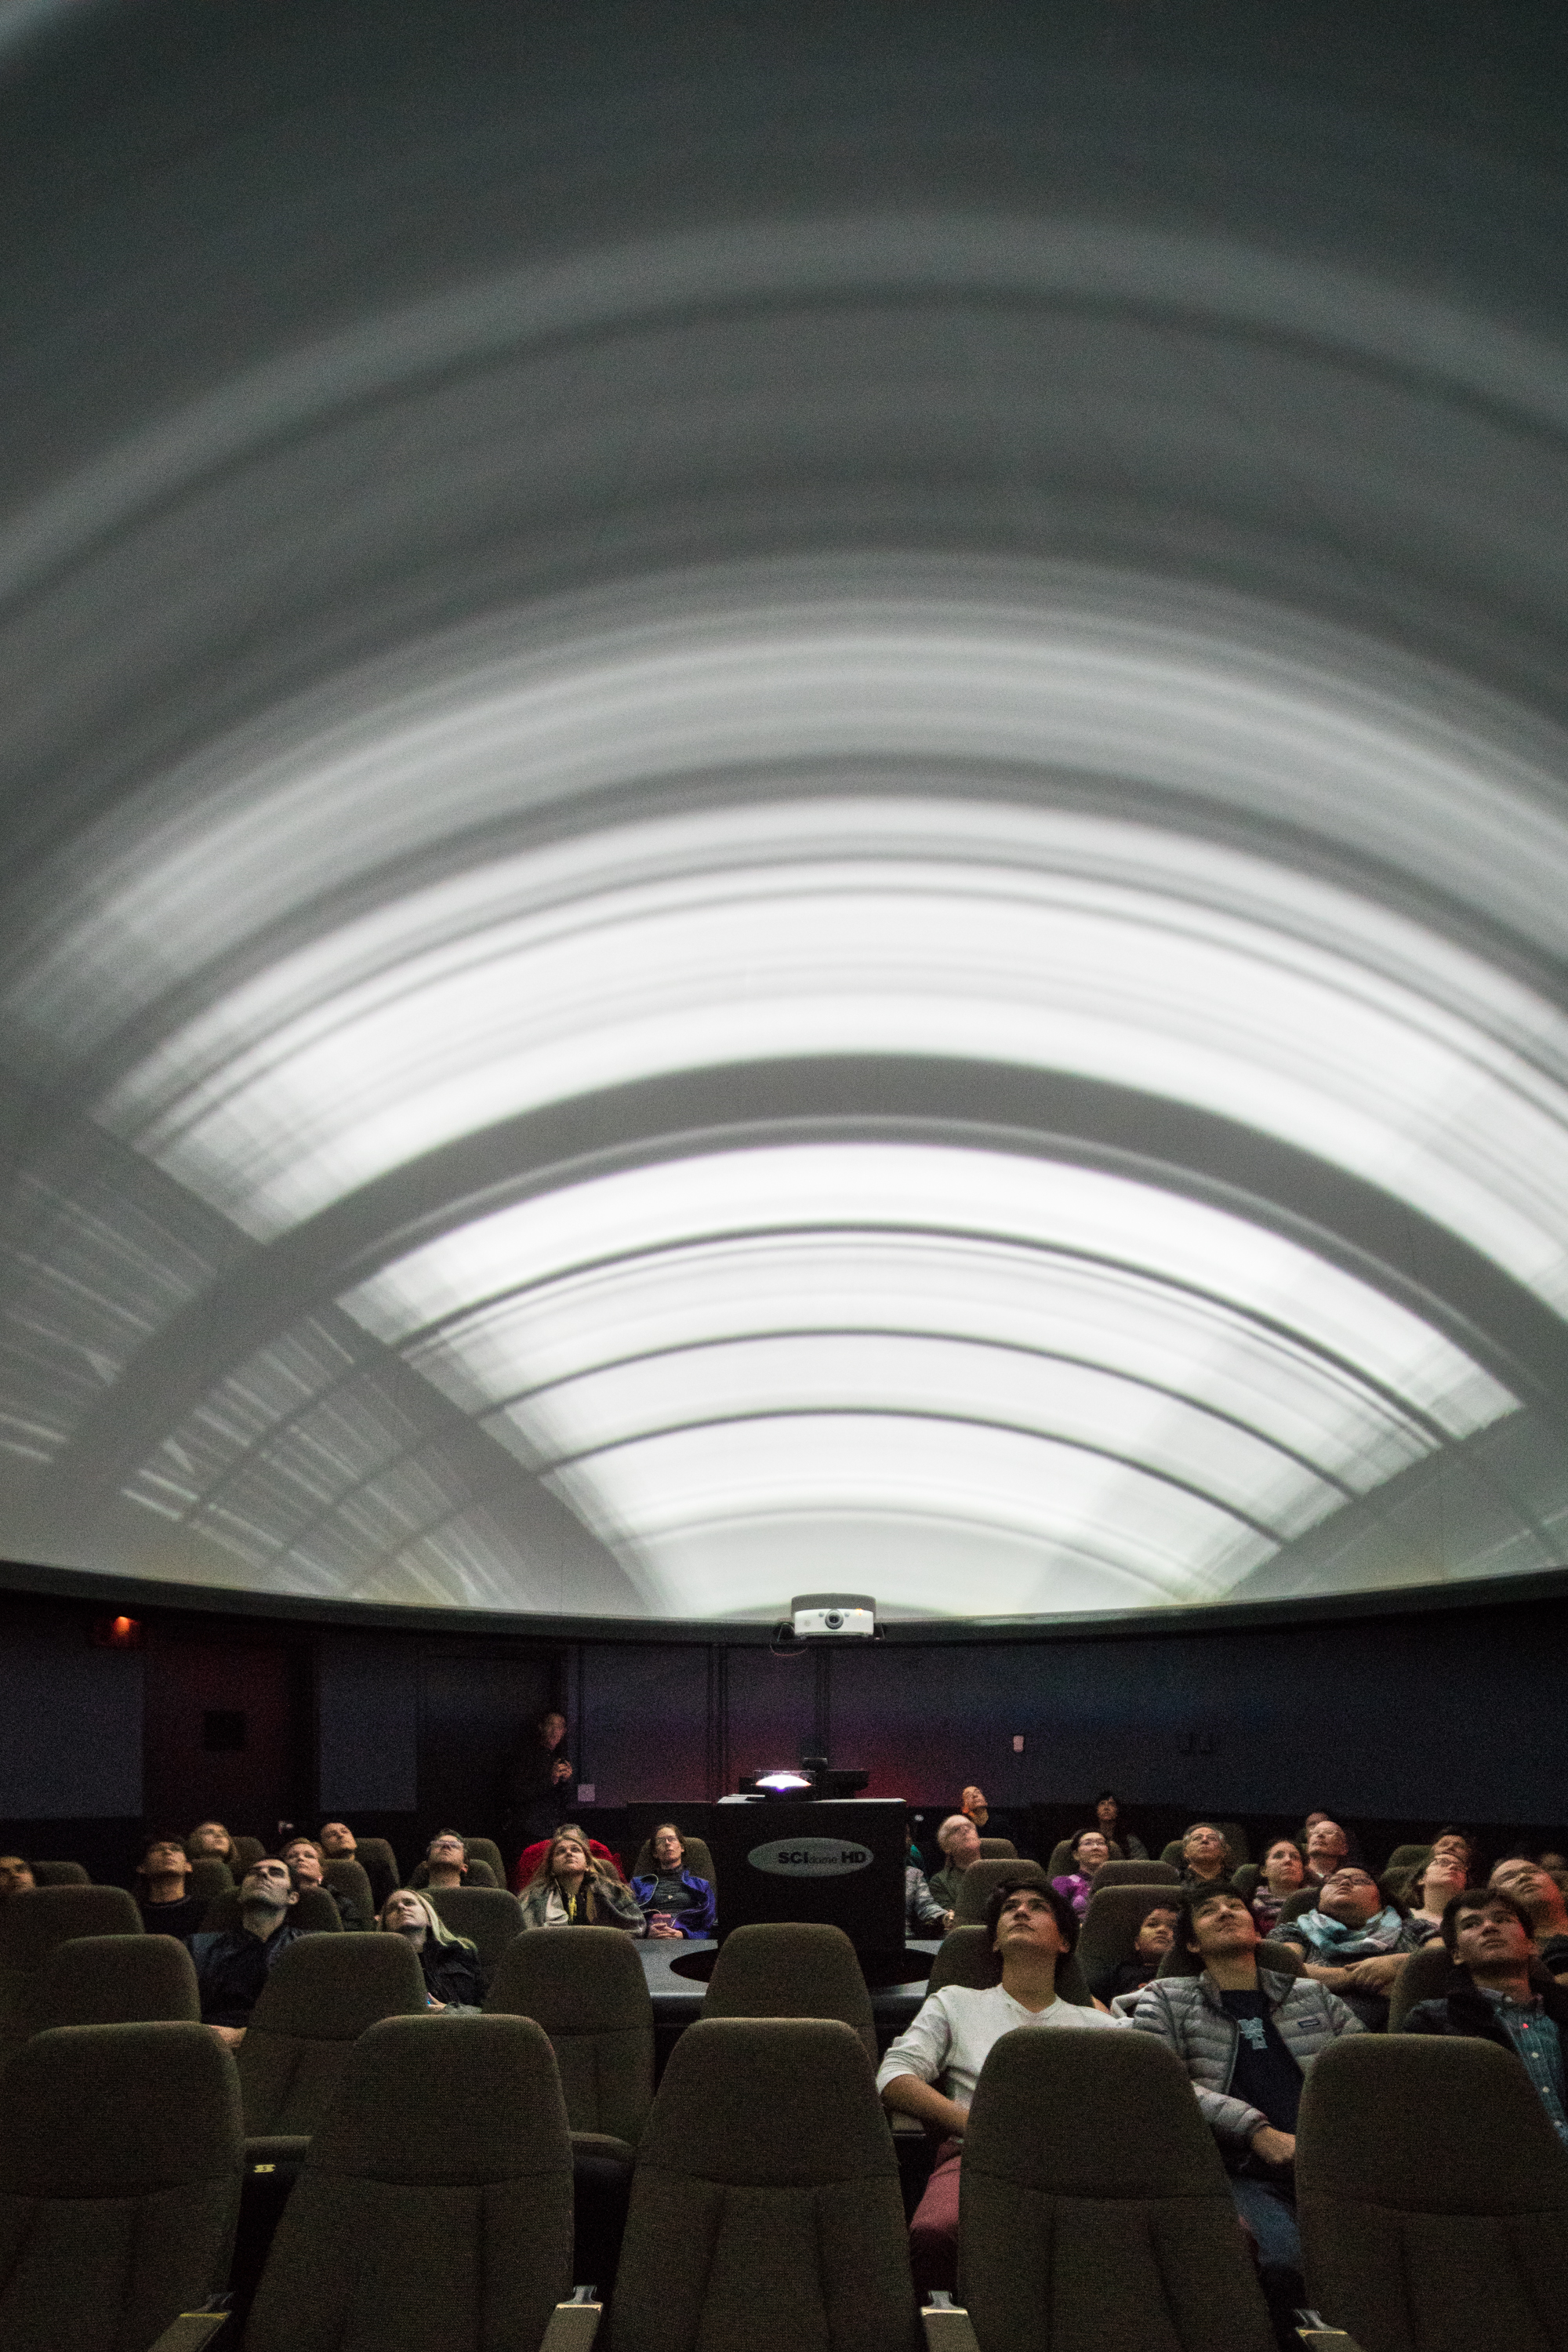 ym_aca_full_dome_projection_111717-6113.jpg